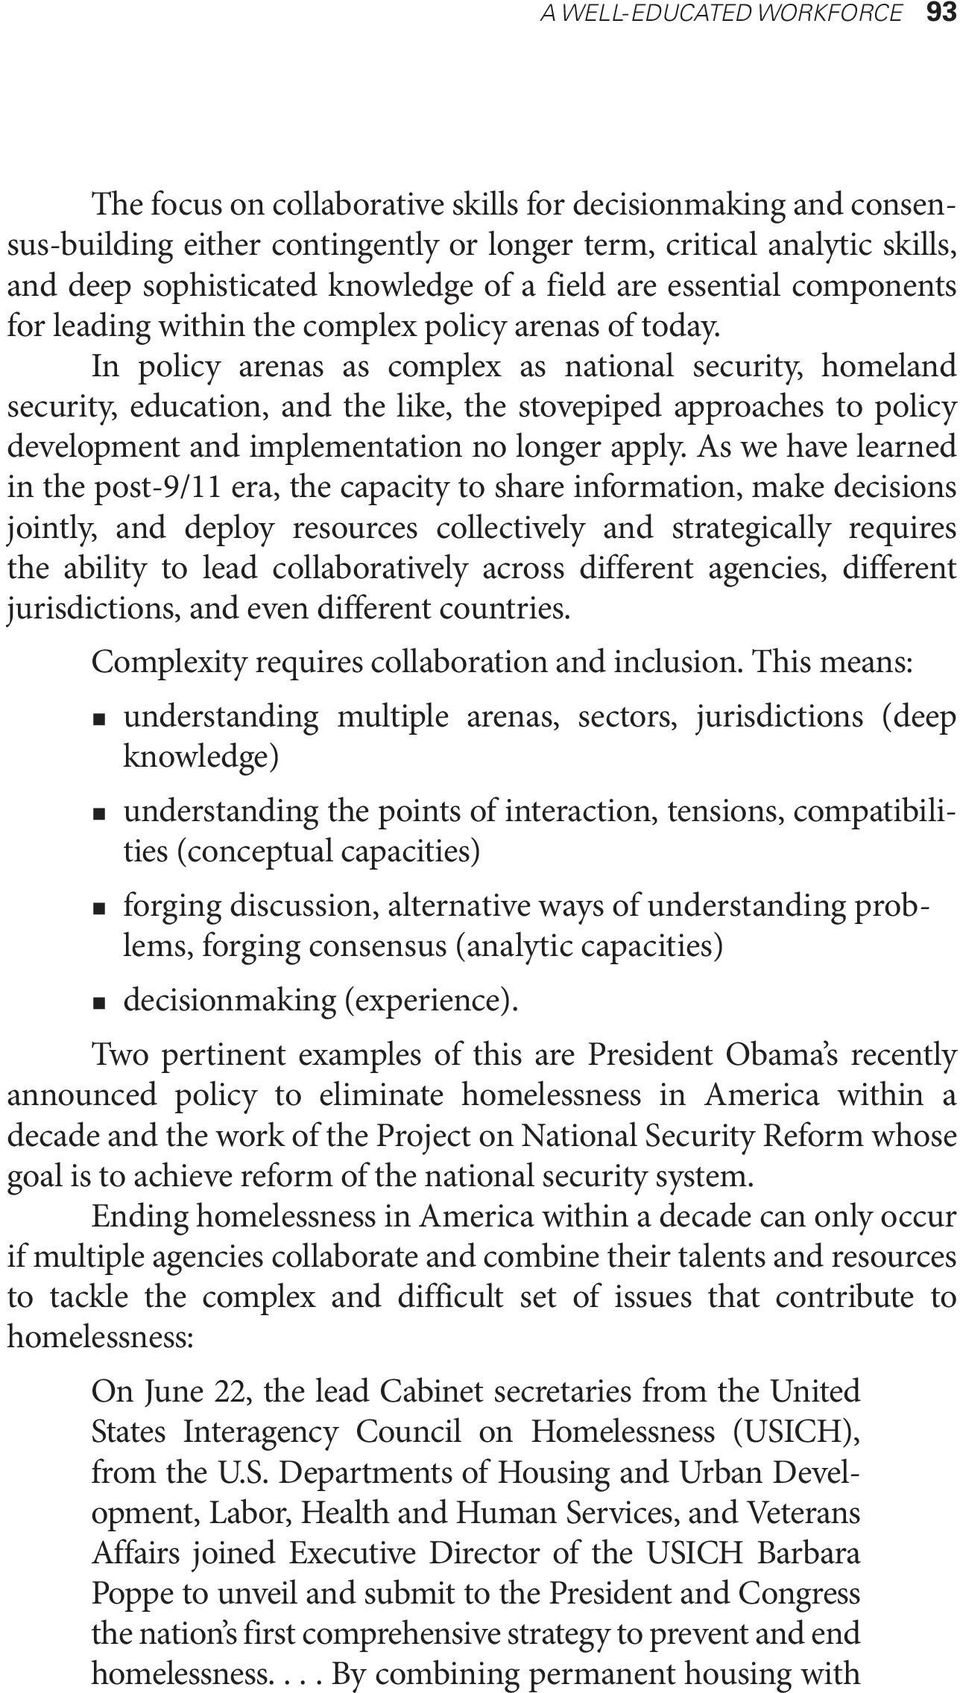 In policy arenas as complex as national security, homeland security, education, and the like, the stovepiped approaches to policy development and implementation no longer apply.